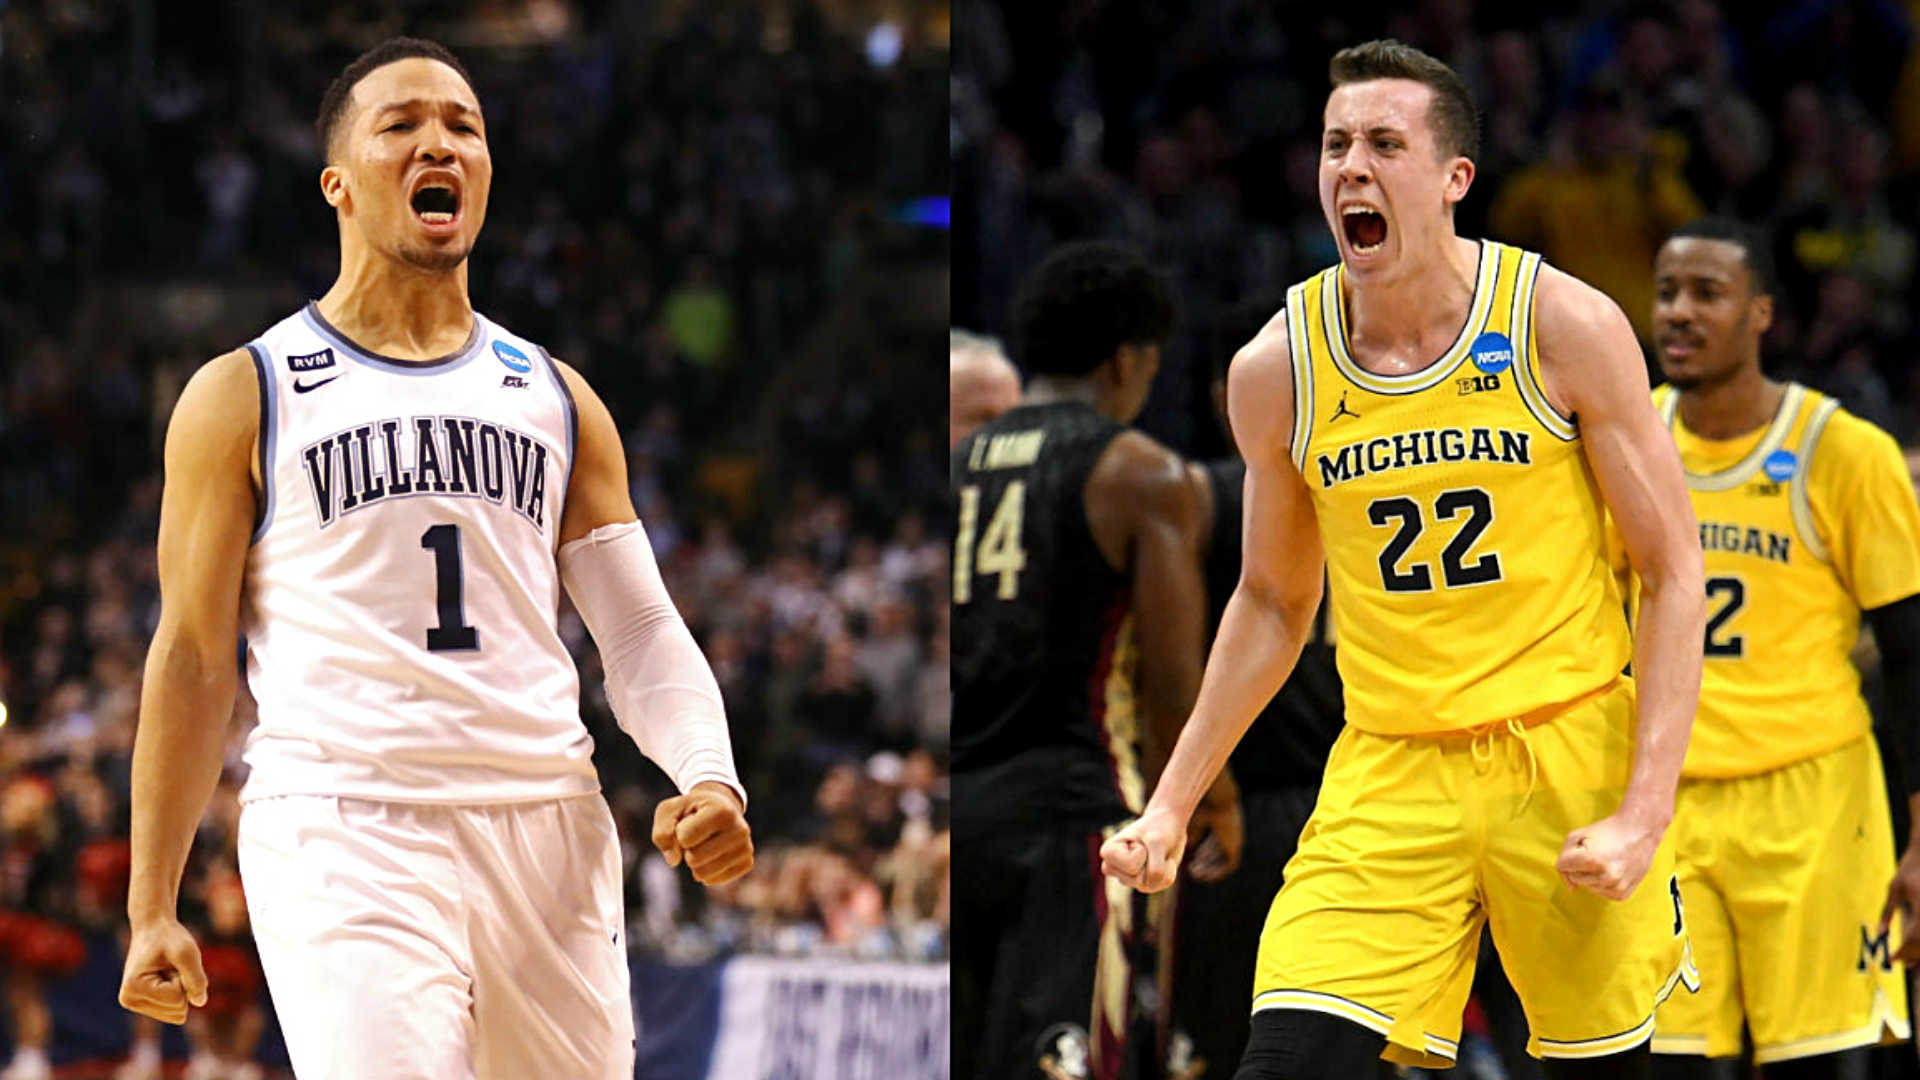 Fans react to Michigan's loss in the National Championship